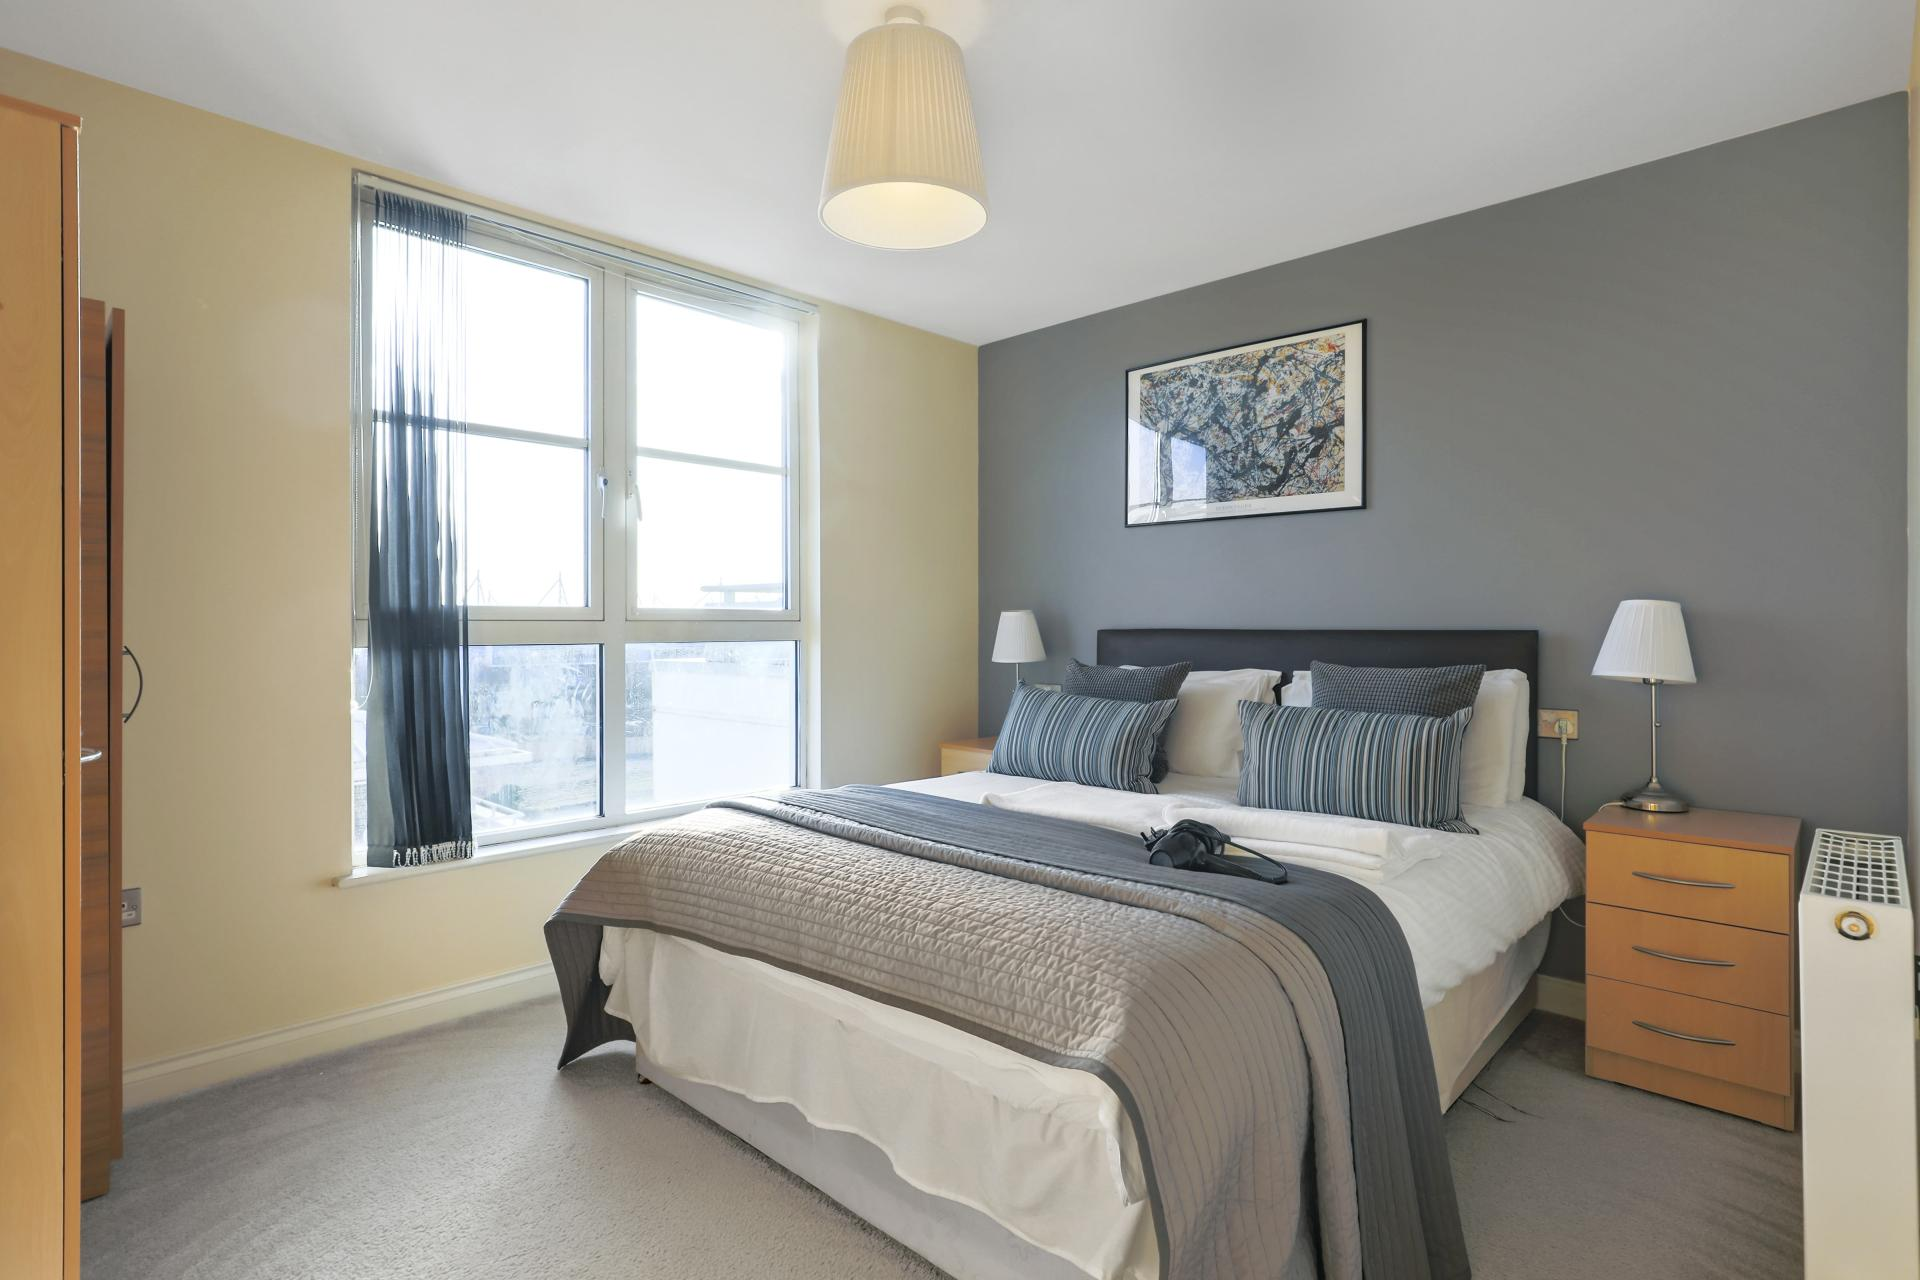 Bed at Freemens Meadow Apartments, Freemens Meadow, Leicester